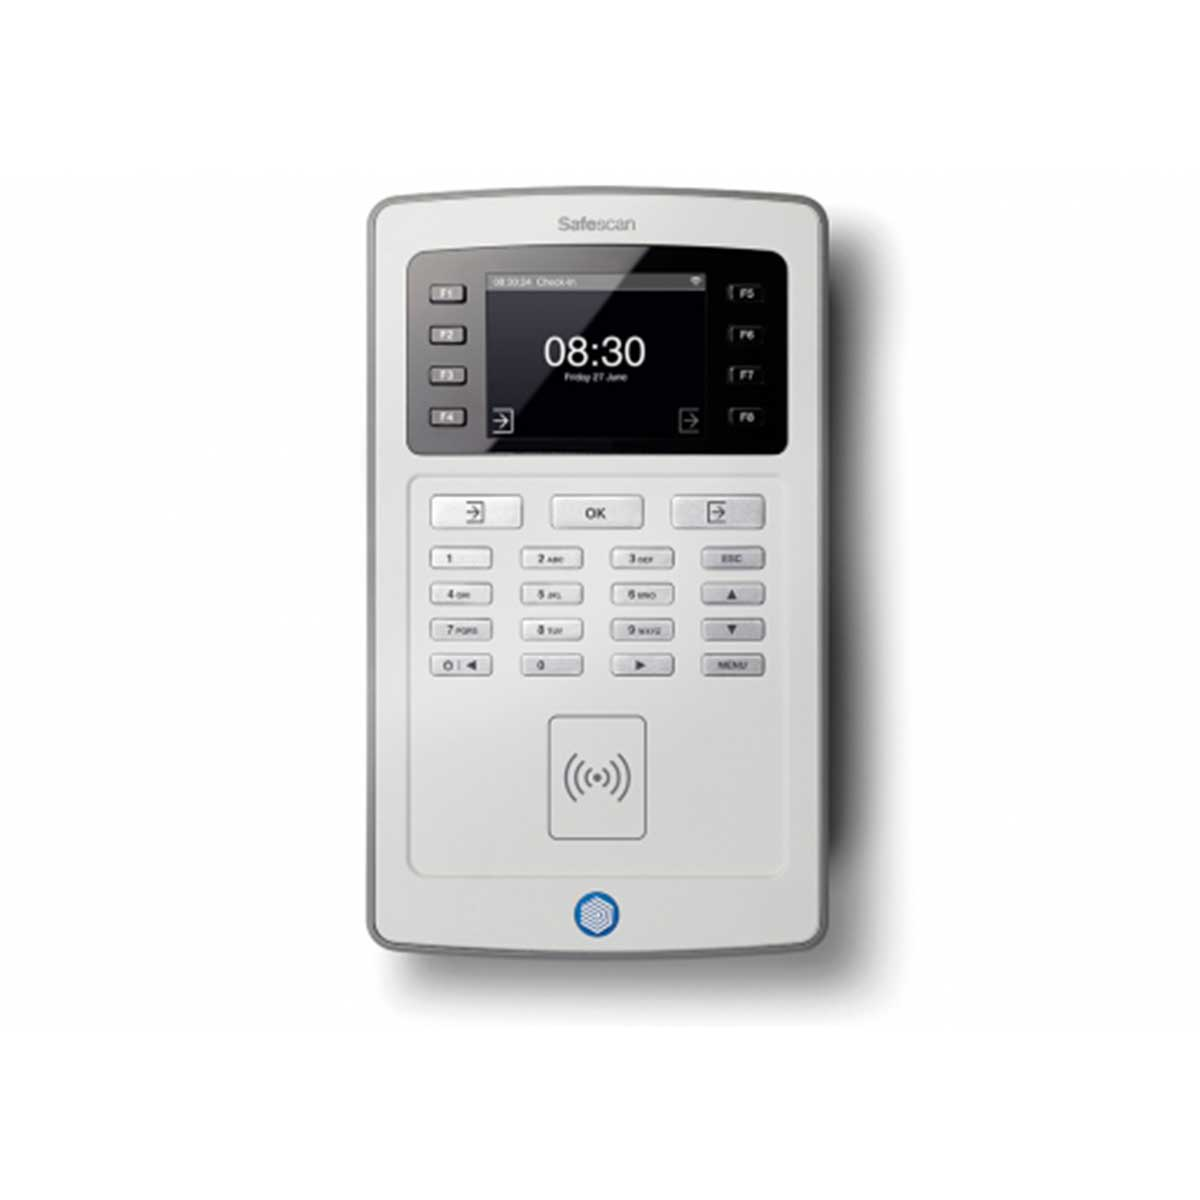 Safescan TA-8015 Time Attendance System with RFID and Wi-Fi - Grey